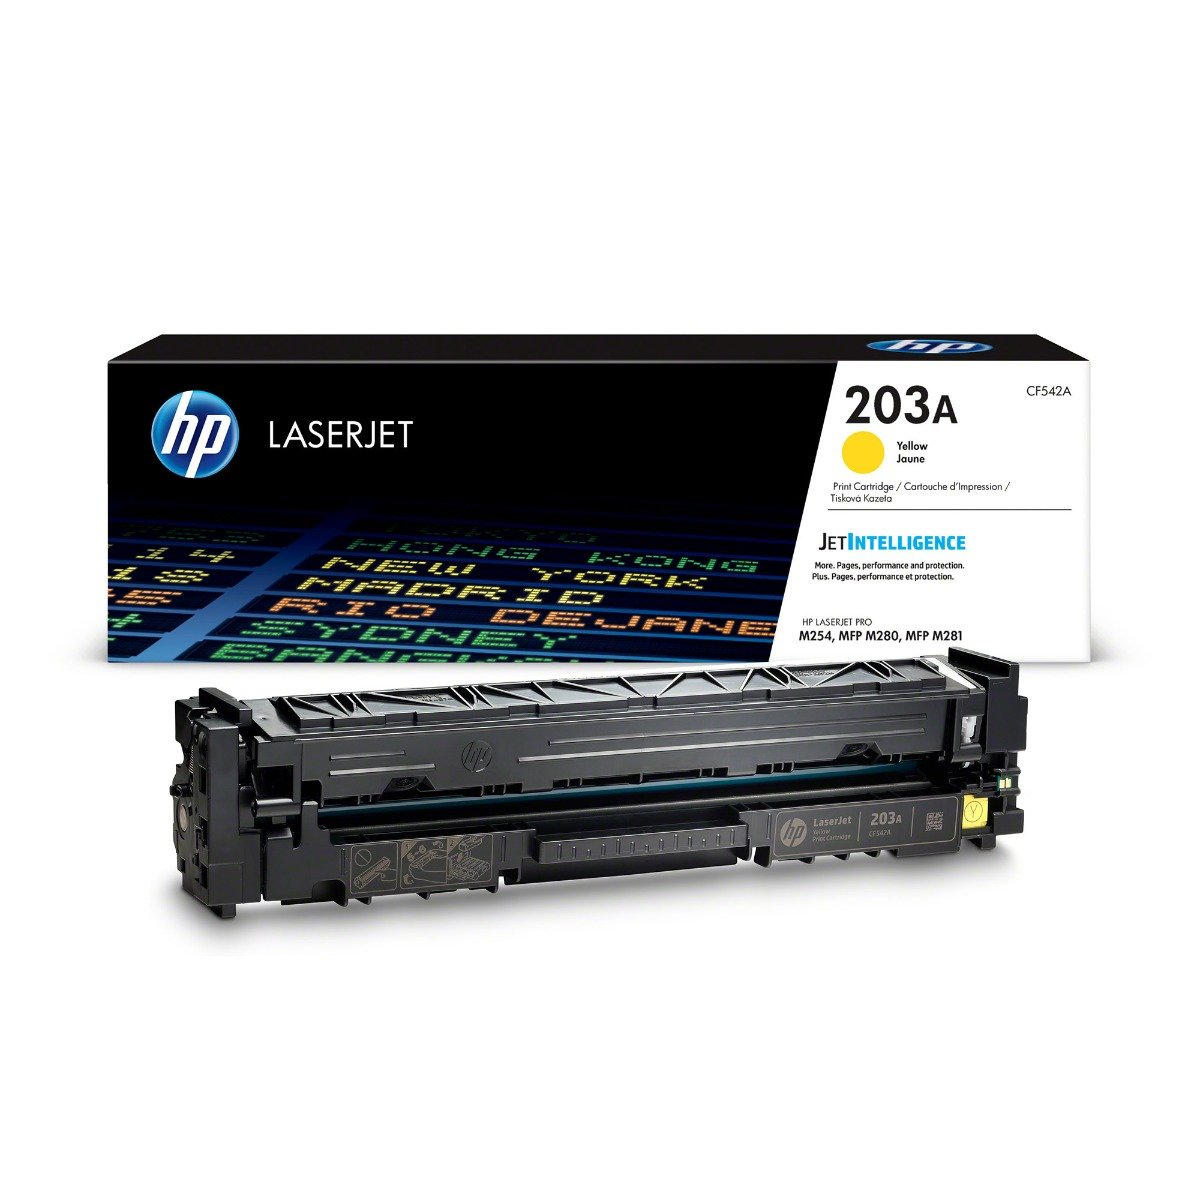 Genuine Yellow HP 203A Toner Cartridge - (CF542A)